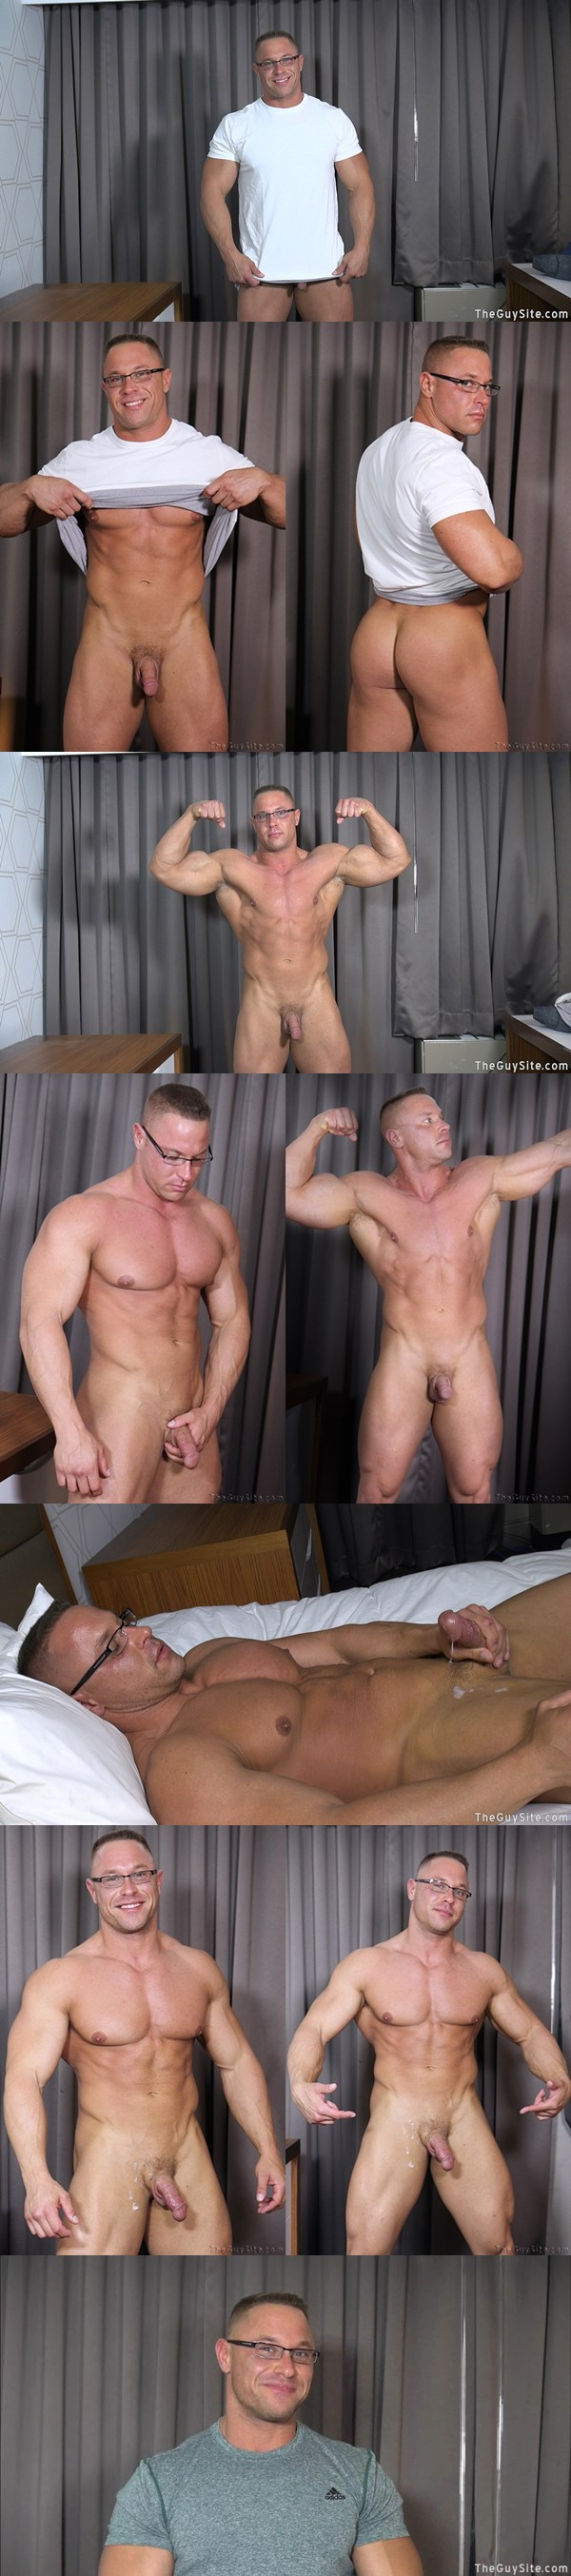 hot bodybuilder Big Daddy John aka Brock Vinson shows off his hard muscles and shoots his thick cum with glasses on at Theguysite